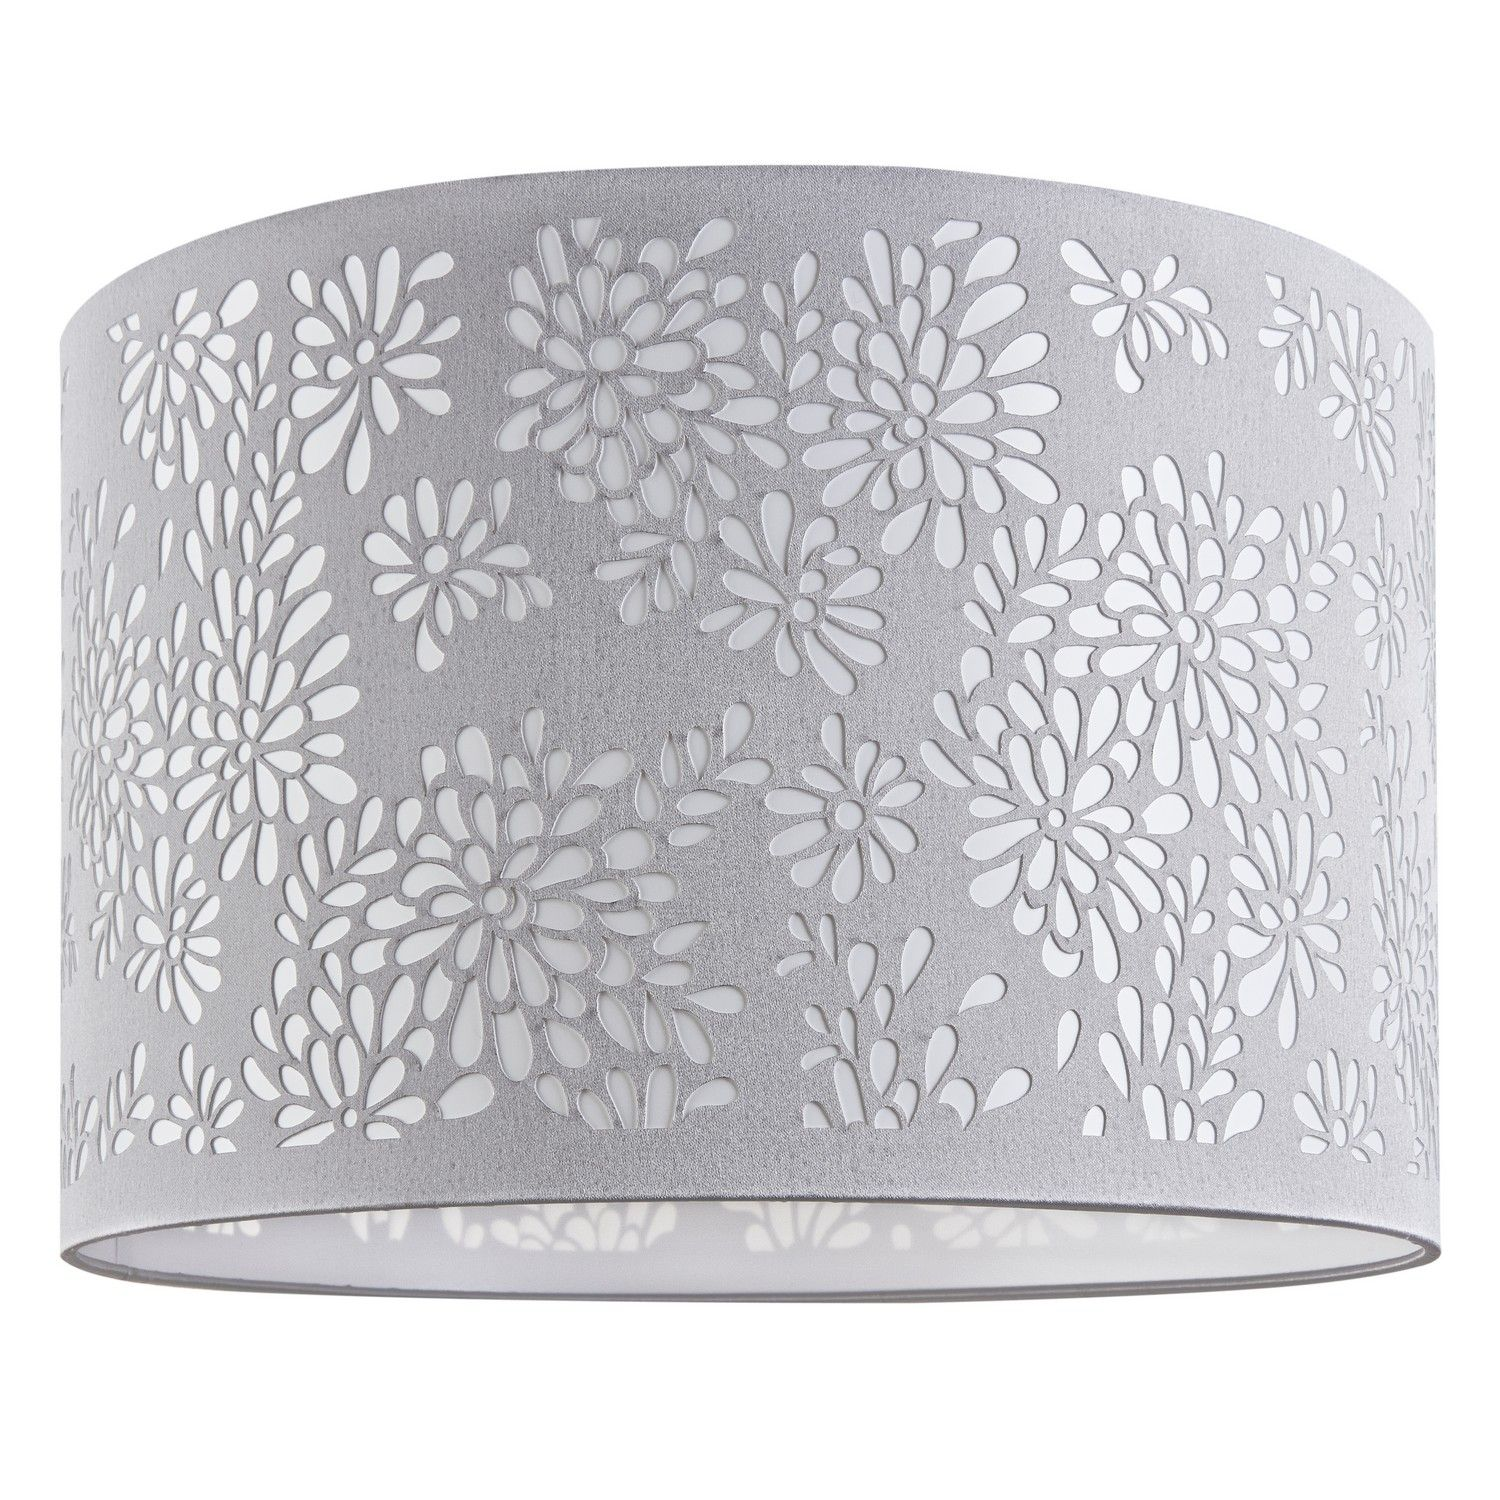 Buy Floral Laser Cut Dove Grey Lampshade